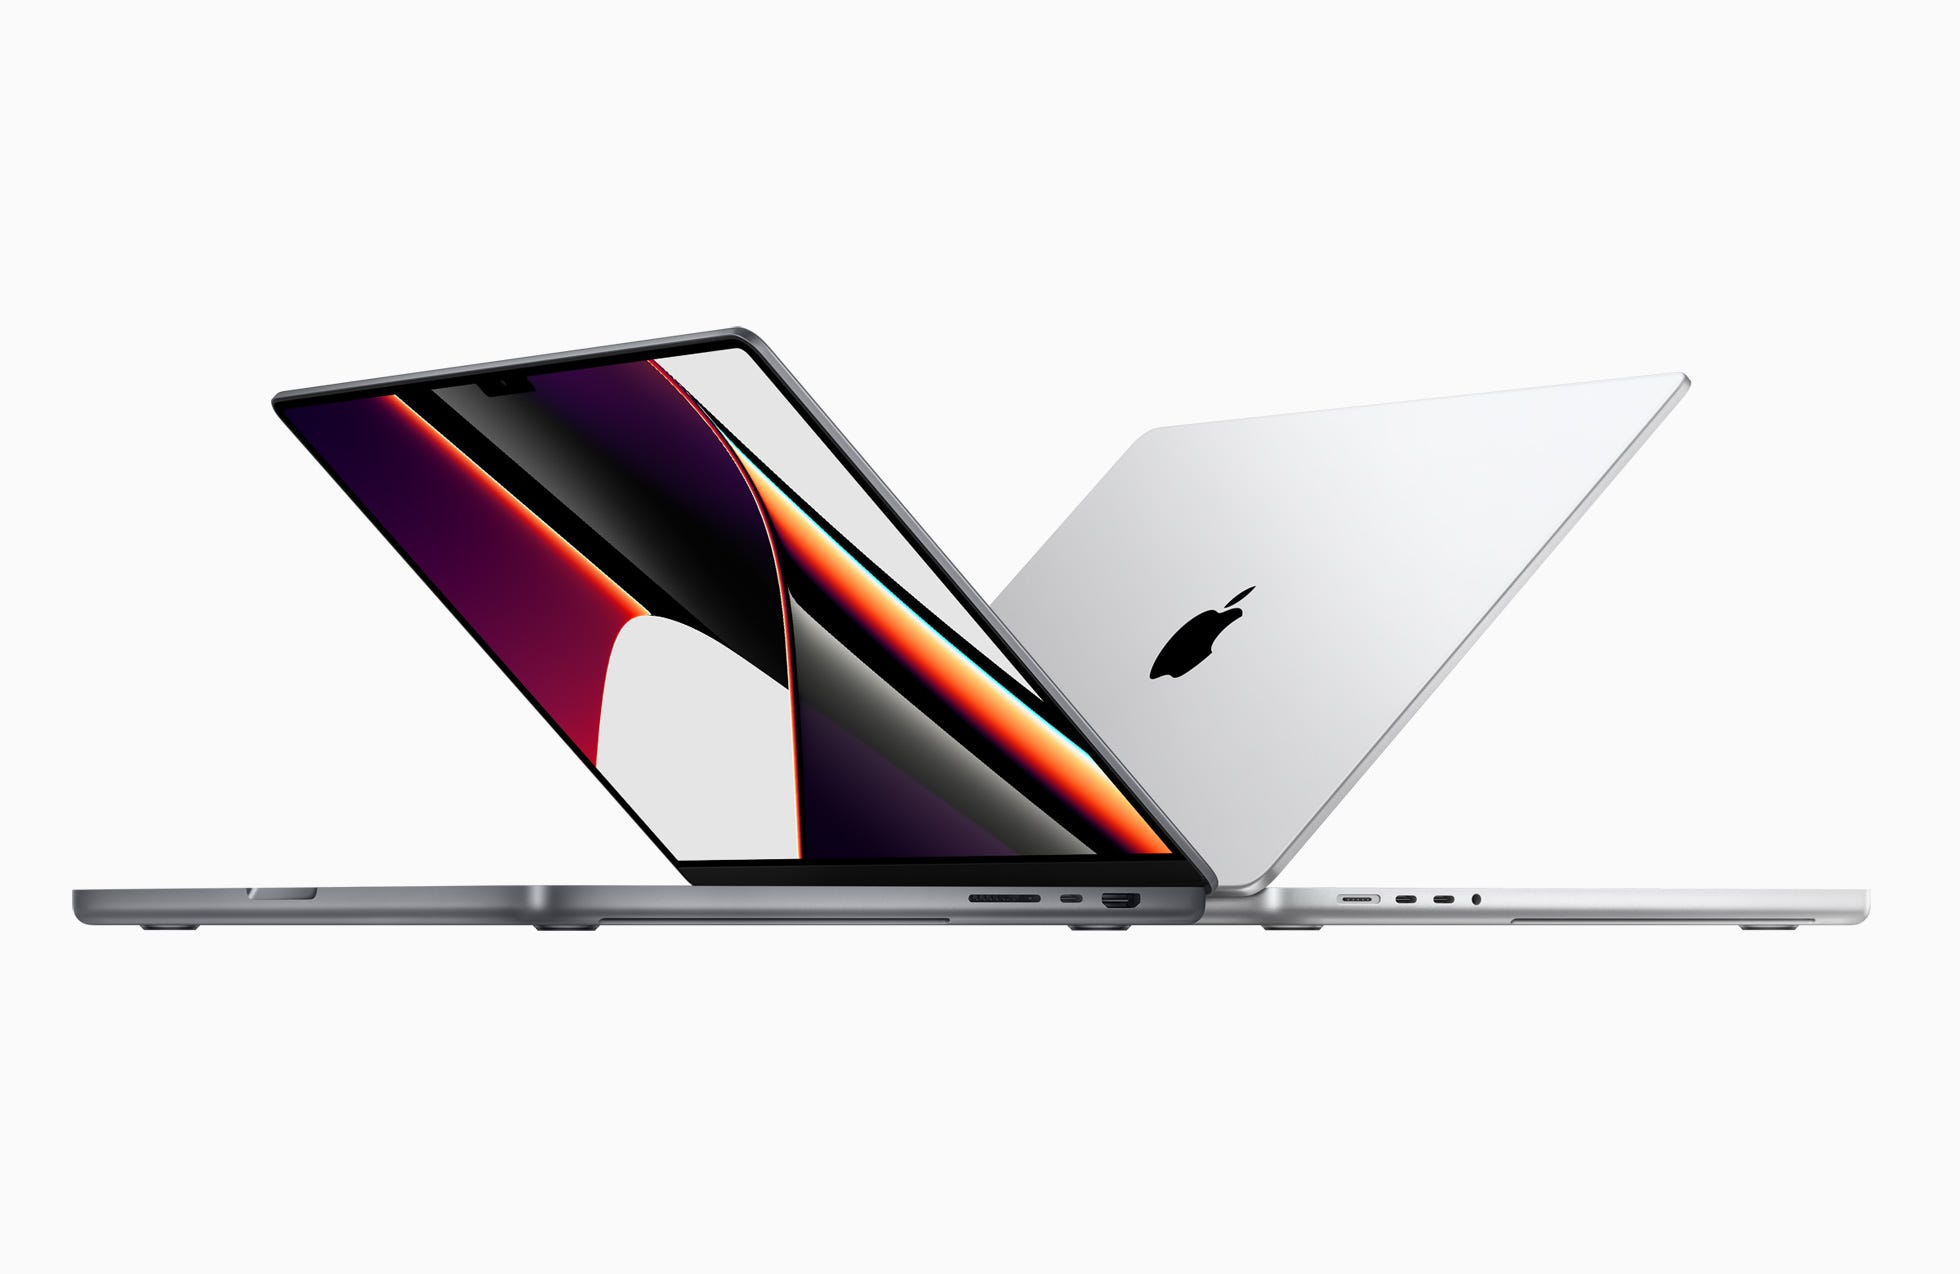 The new MacBook Pros: Top-of-the line model will cost you more than $6,000